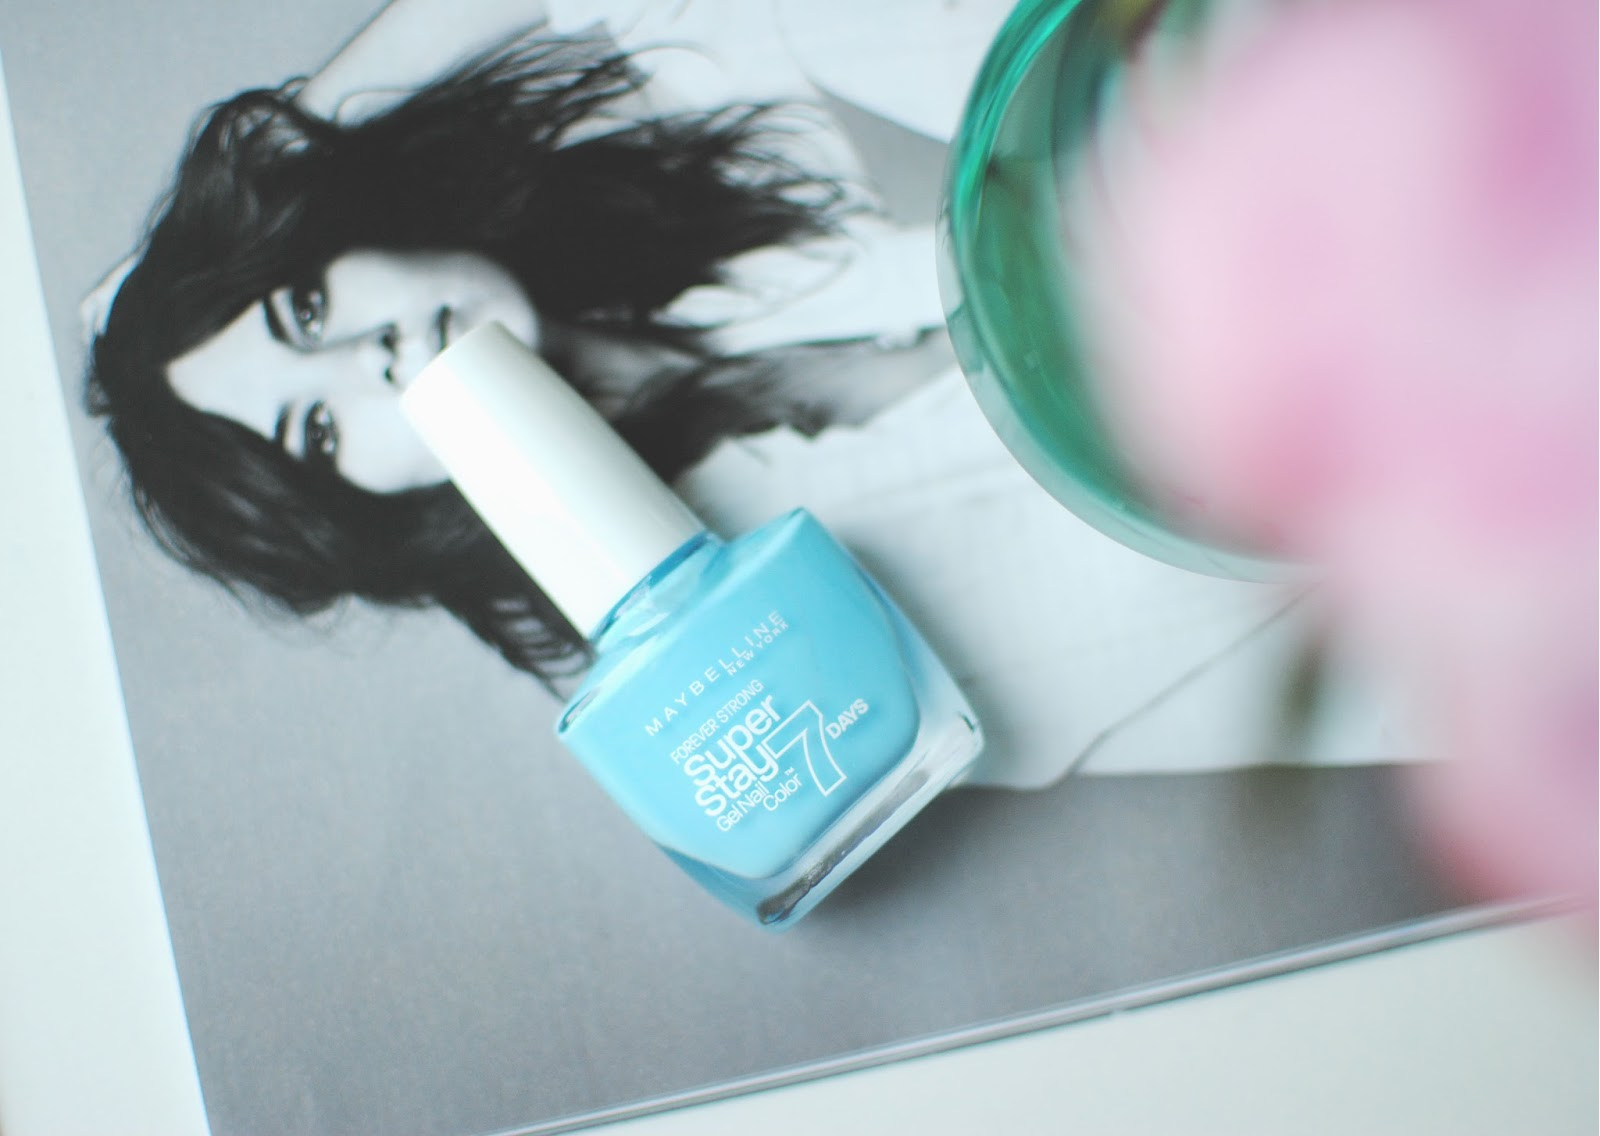 maybelline superstar , nail polish summer nails uptown blue